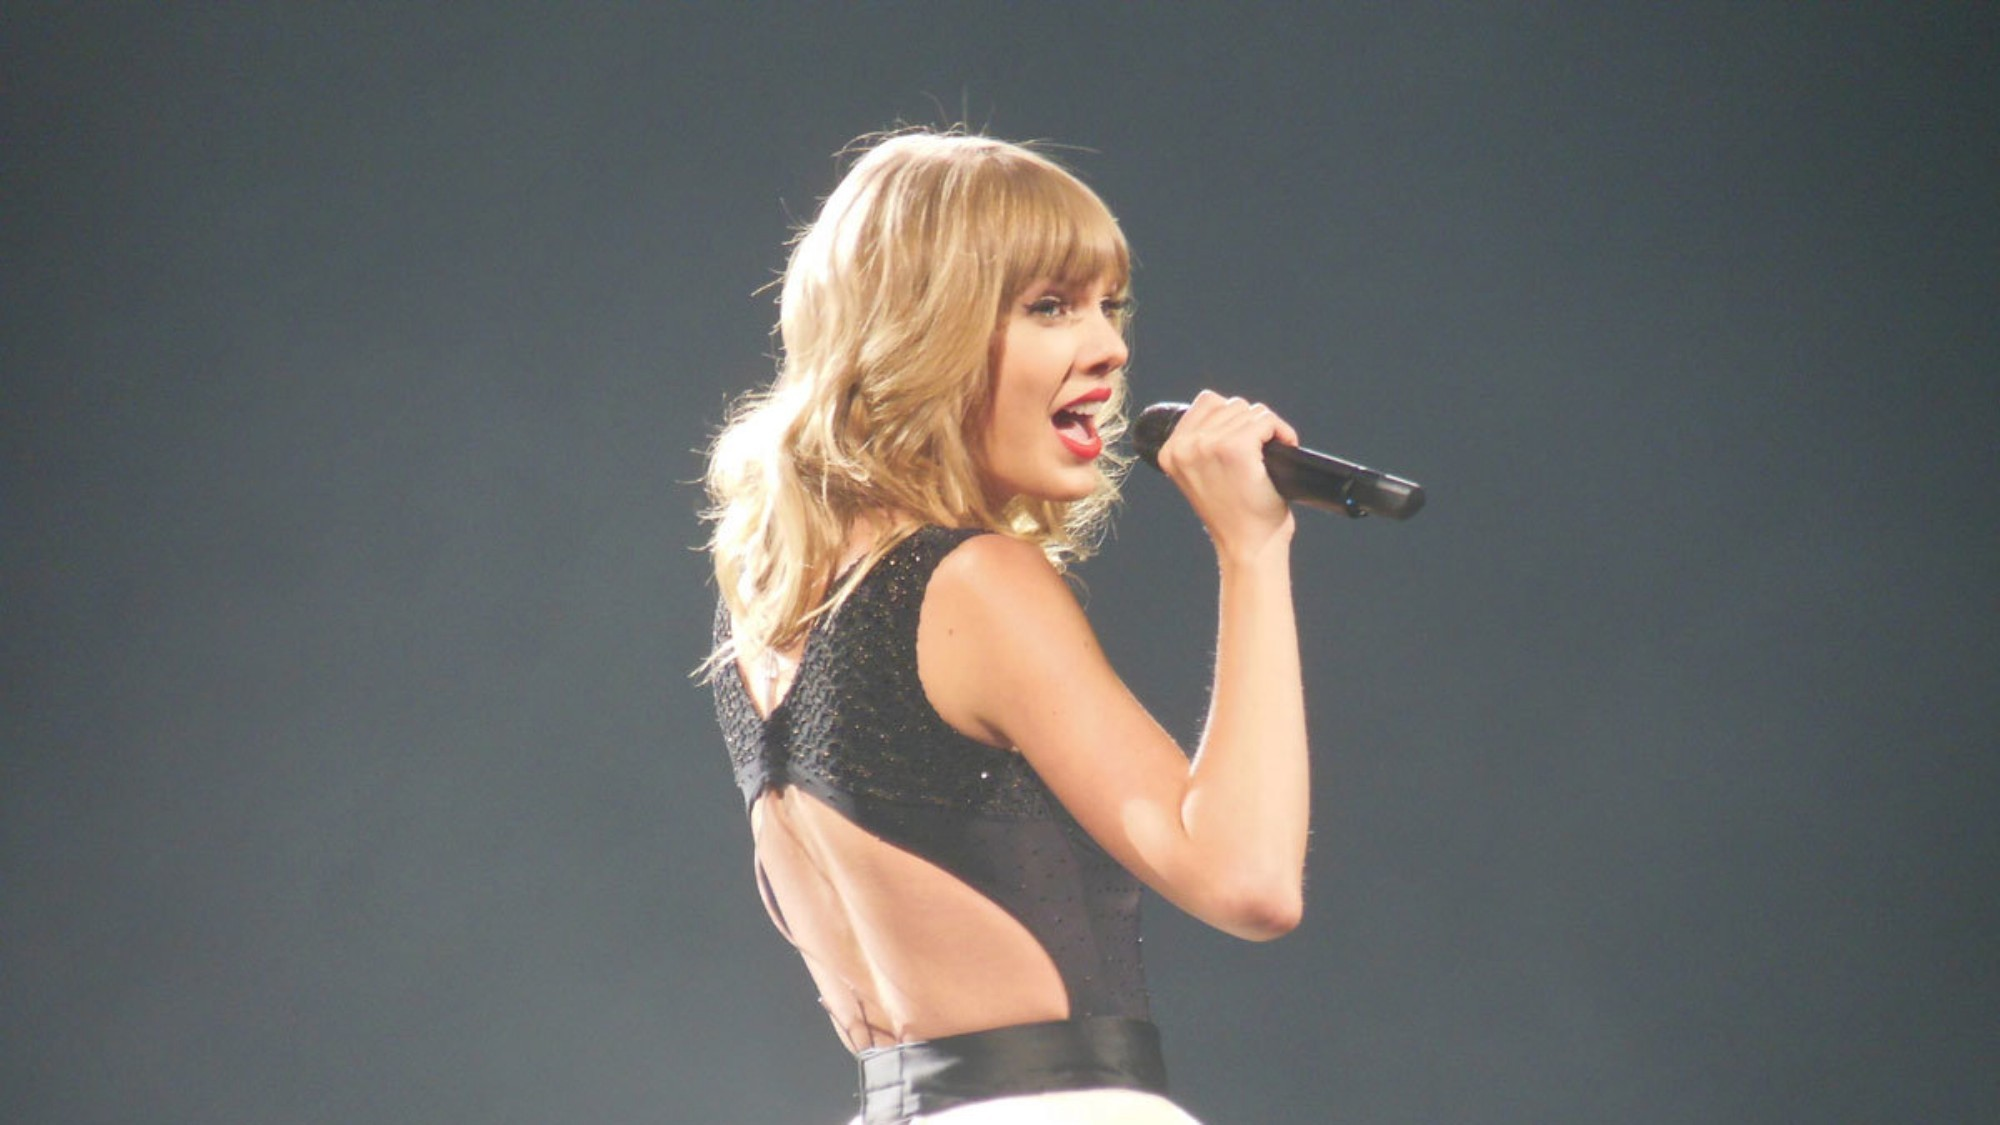 ​taylor swift's 1989 will not be on apple music